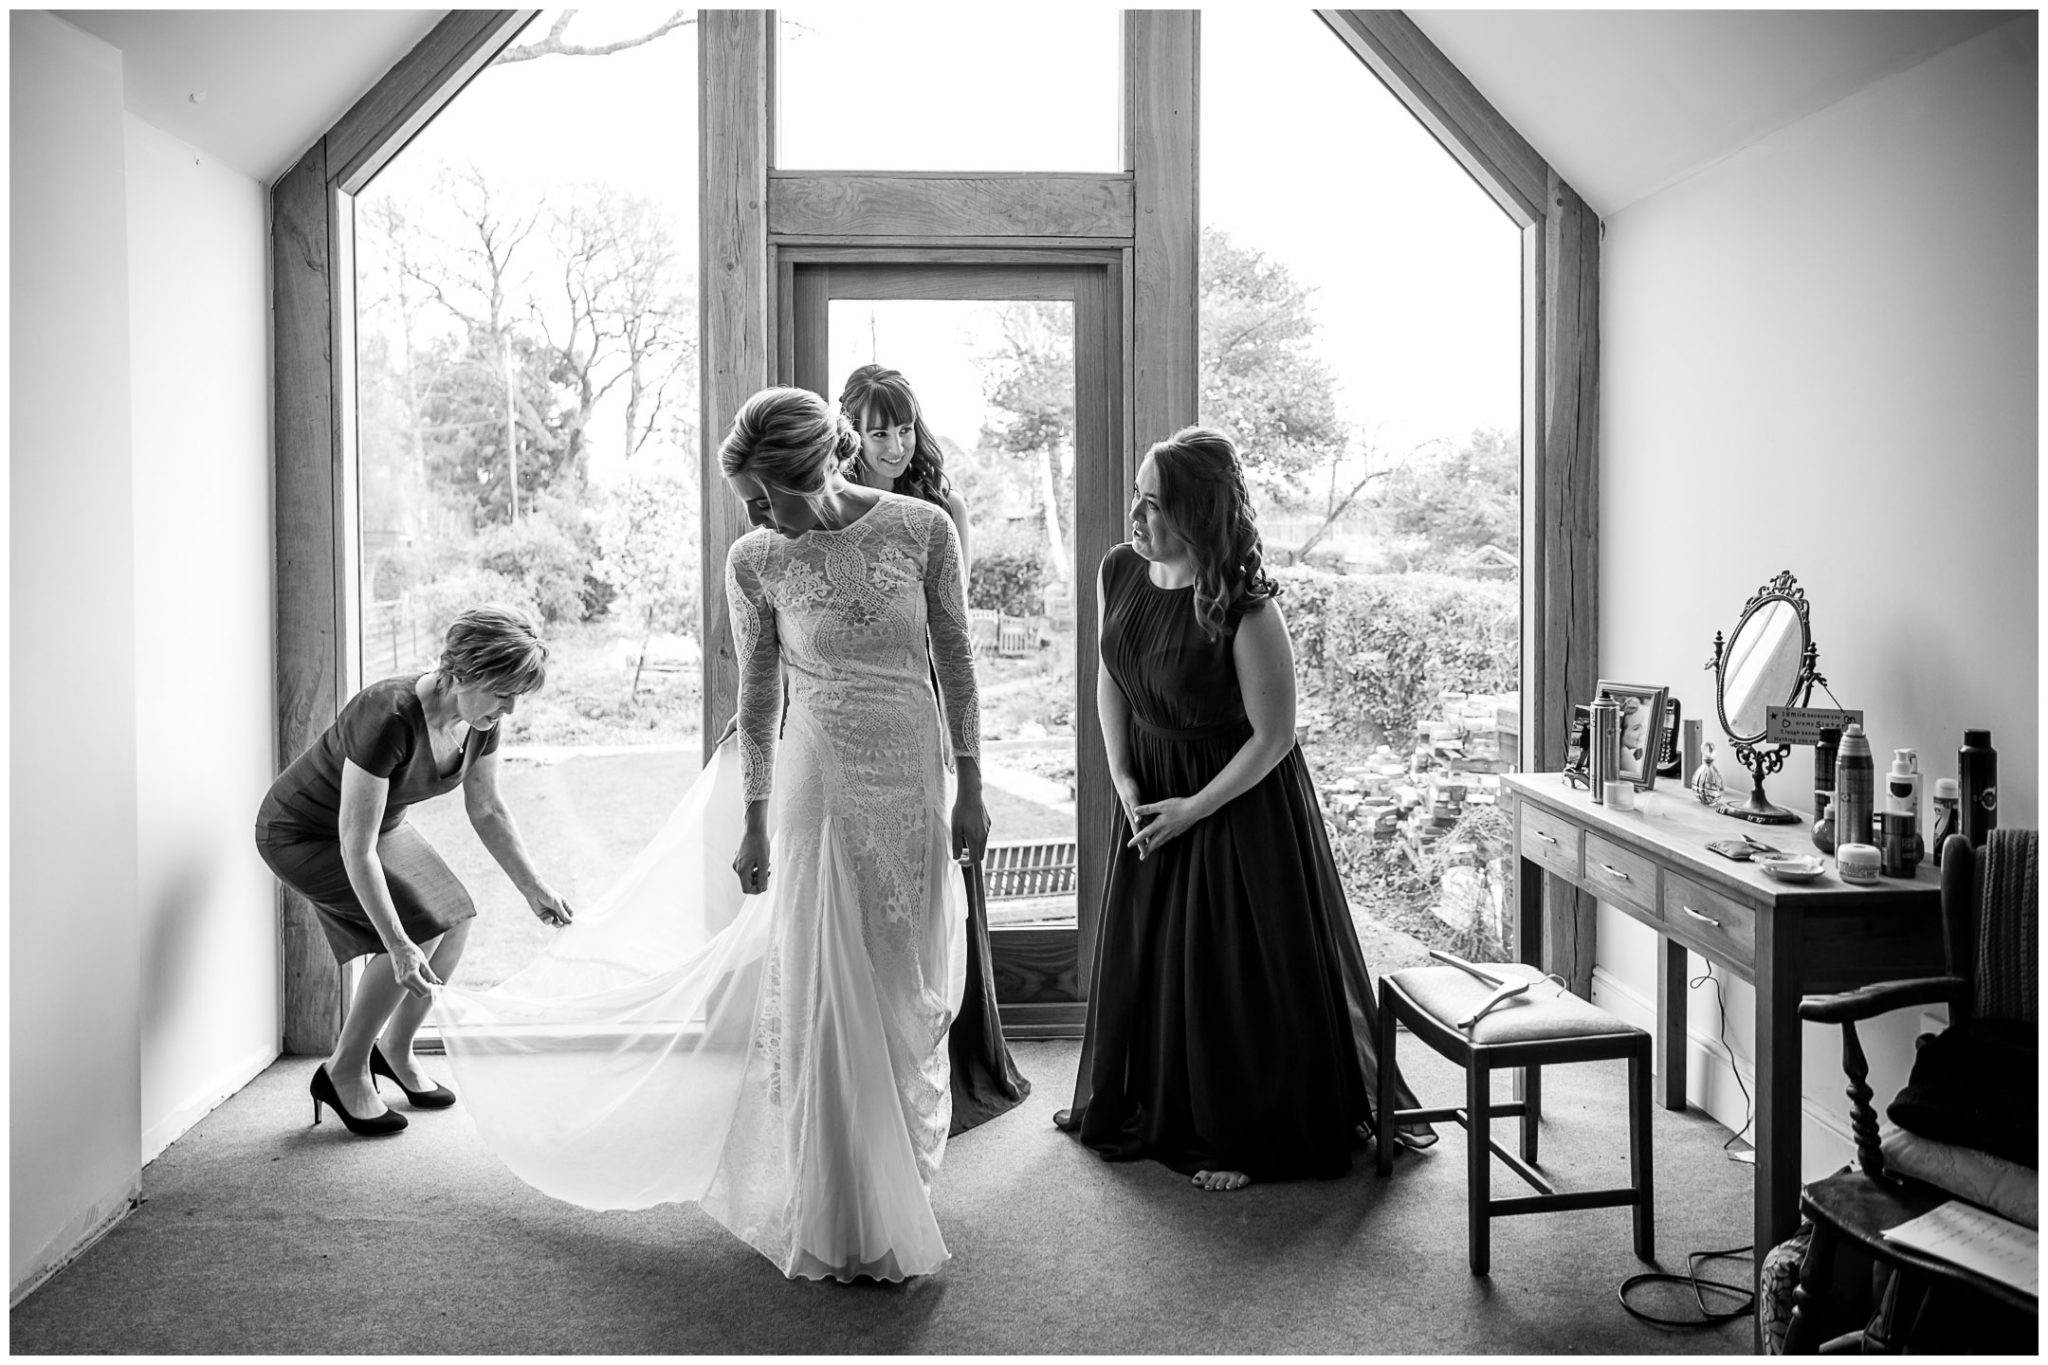 The bride's mother and her bridesmaids help her to get into her wedding dress